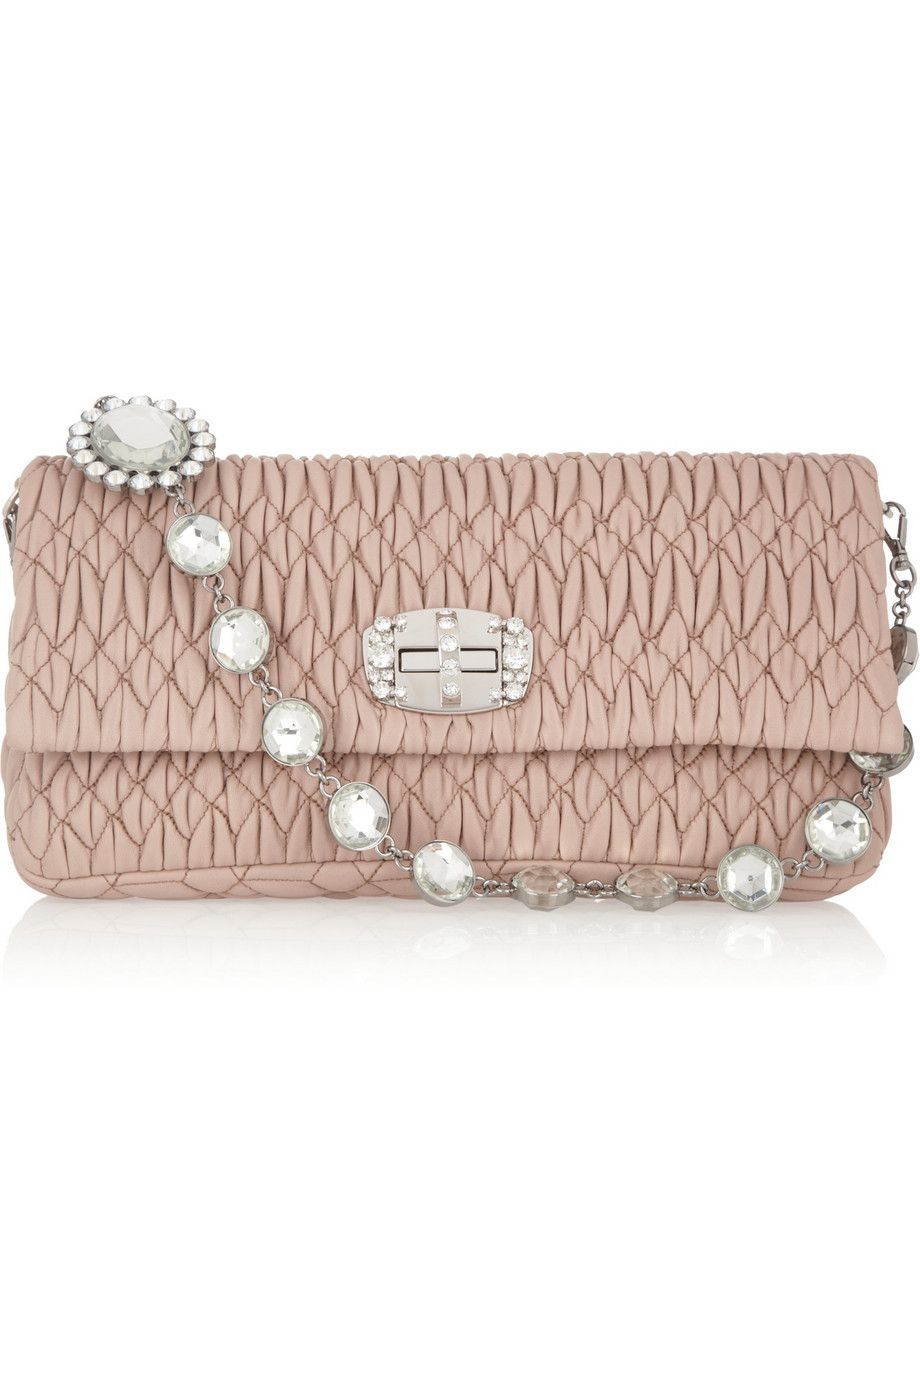 Quilted Colourblock Clutch - Only One Size / Multi Miu Miu Outlet Store Locations Best Prices Cheap Price Buy Cheap Extremely Brand New Unisex Sale Online Best Place Sale Online kI73VFa